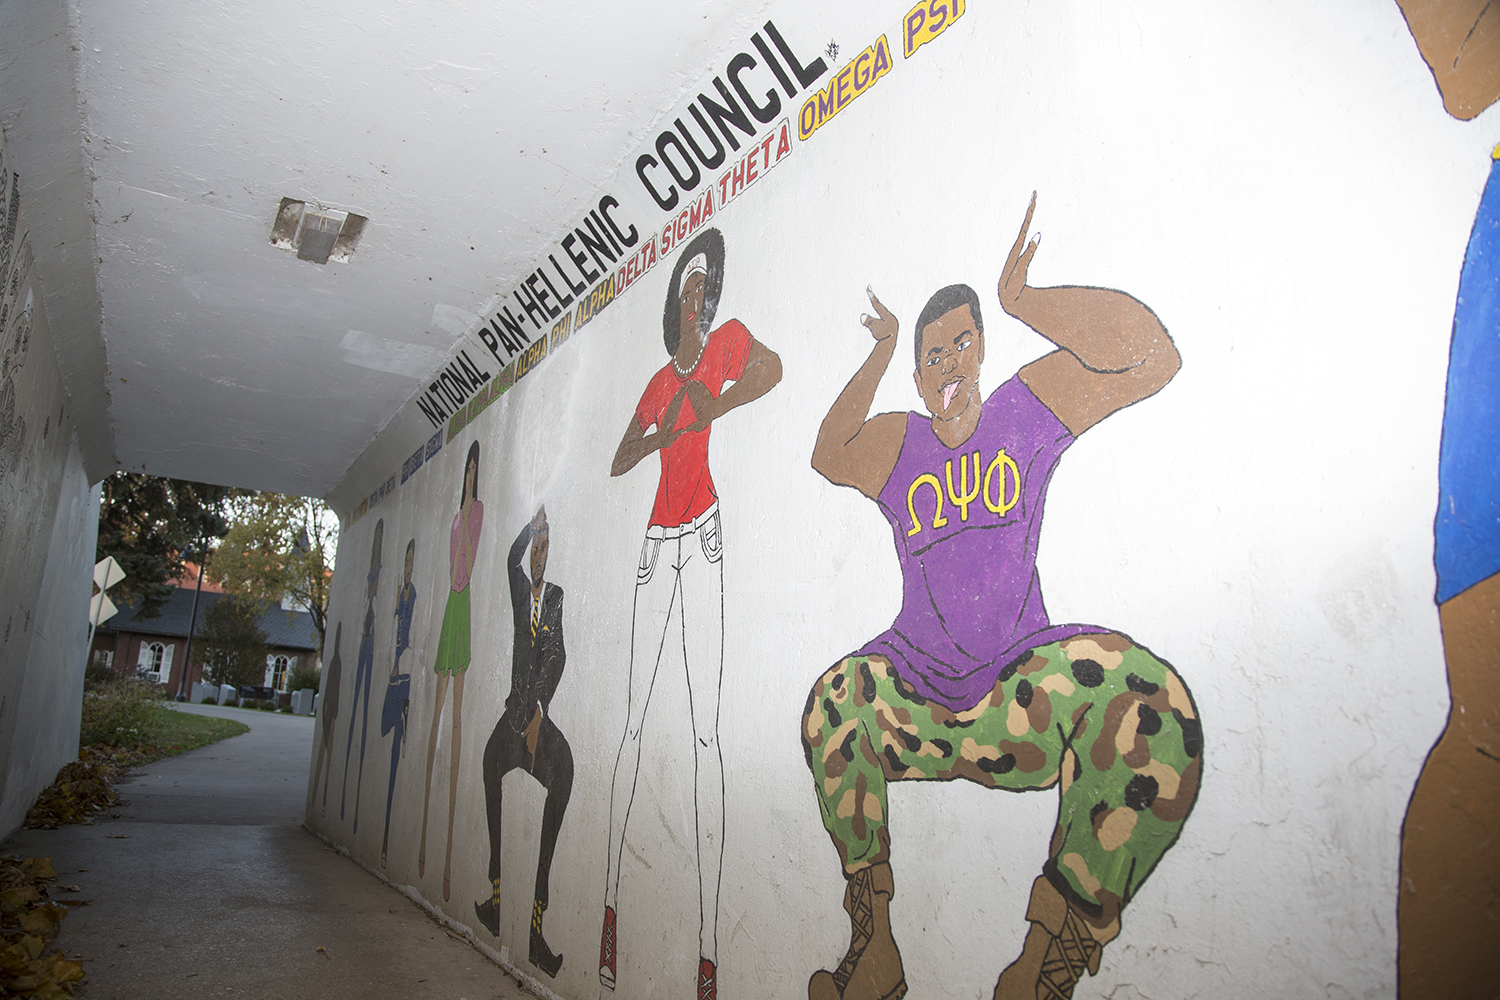 The pedestrian mural is seen in the tunnel by Hubbard Park in Iowa City on Sunday, Oct. 28, 2018. The mural will be decommissioned in November.